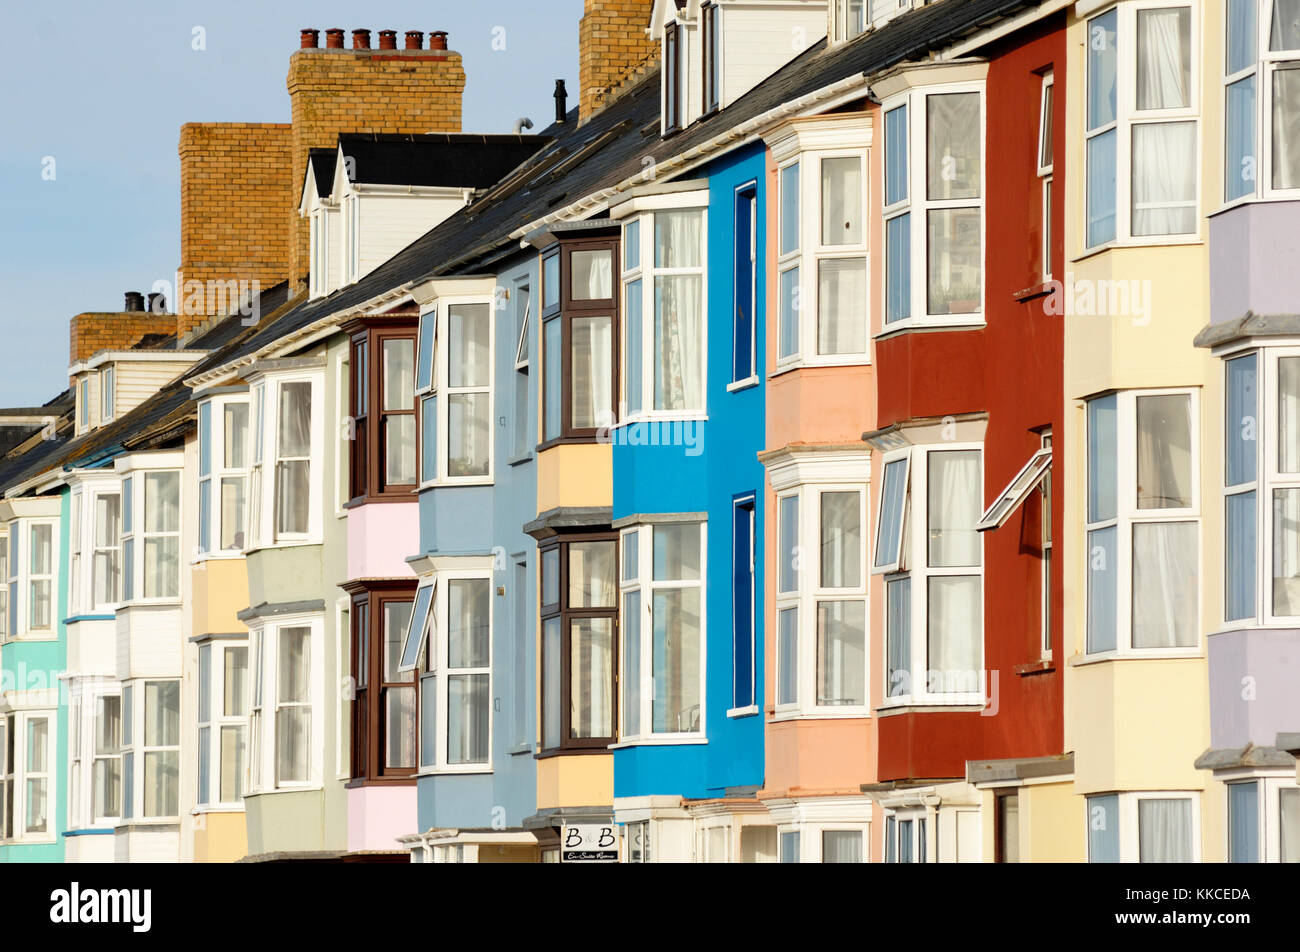 Brightly coloured seafront housing in Aberystwyth, Wales Stock Photo